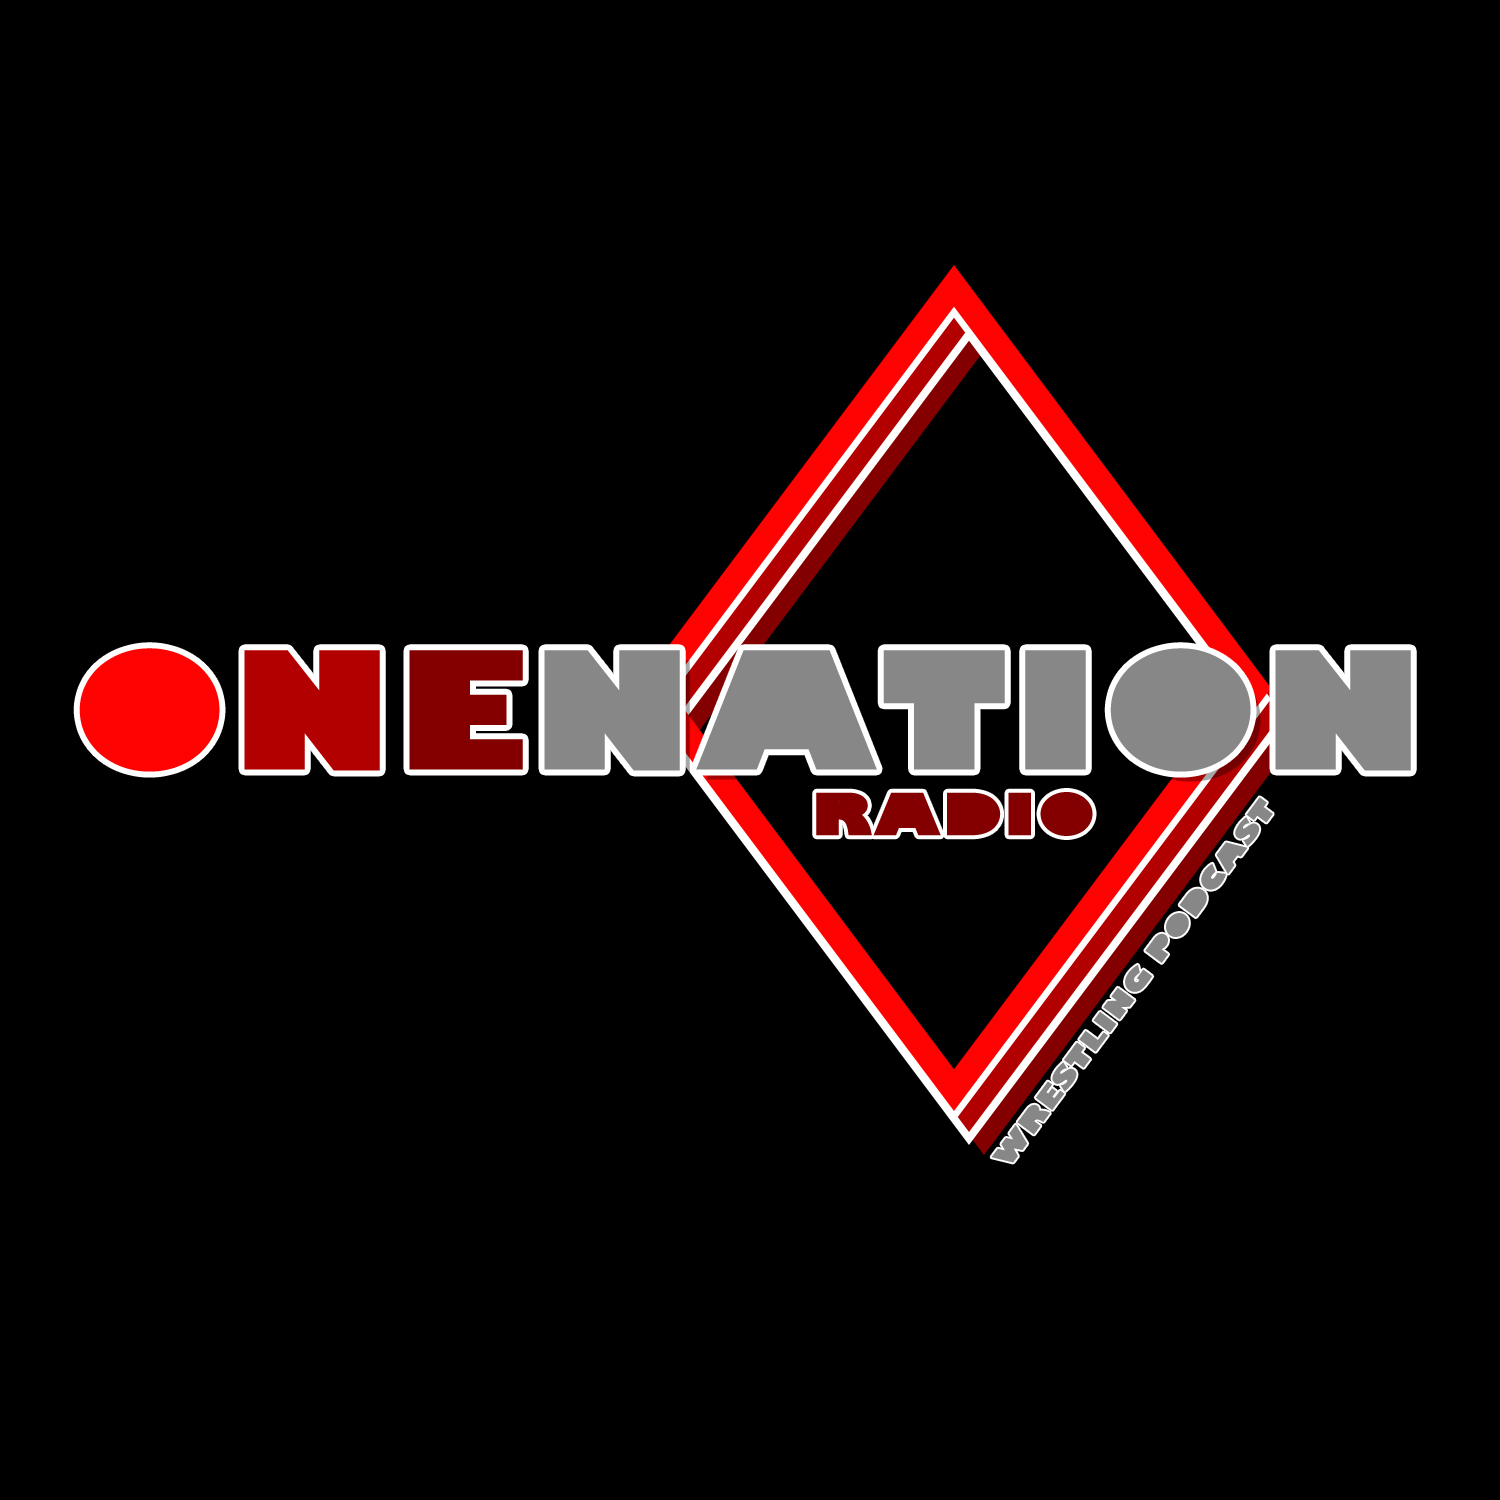 One Nation Live - RICH SWANN, TRIPLE H BURIES JINDER, DANIEL BRYAN HEEL TURN?, MIA KHALIFA & YOUR QUESTIONS